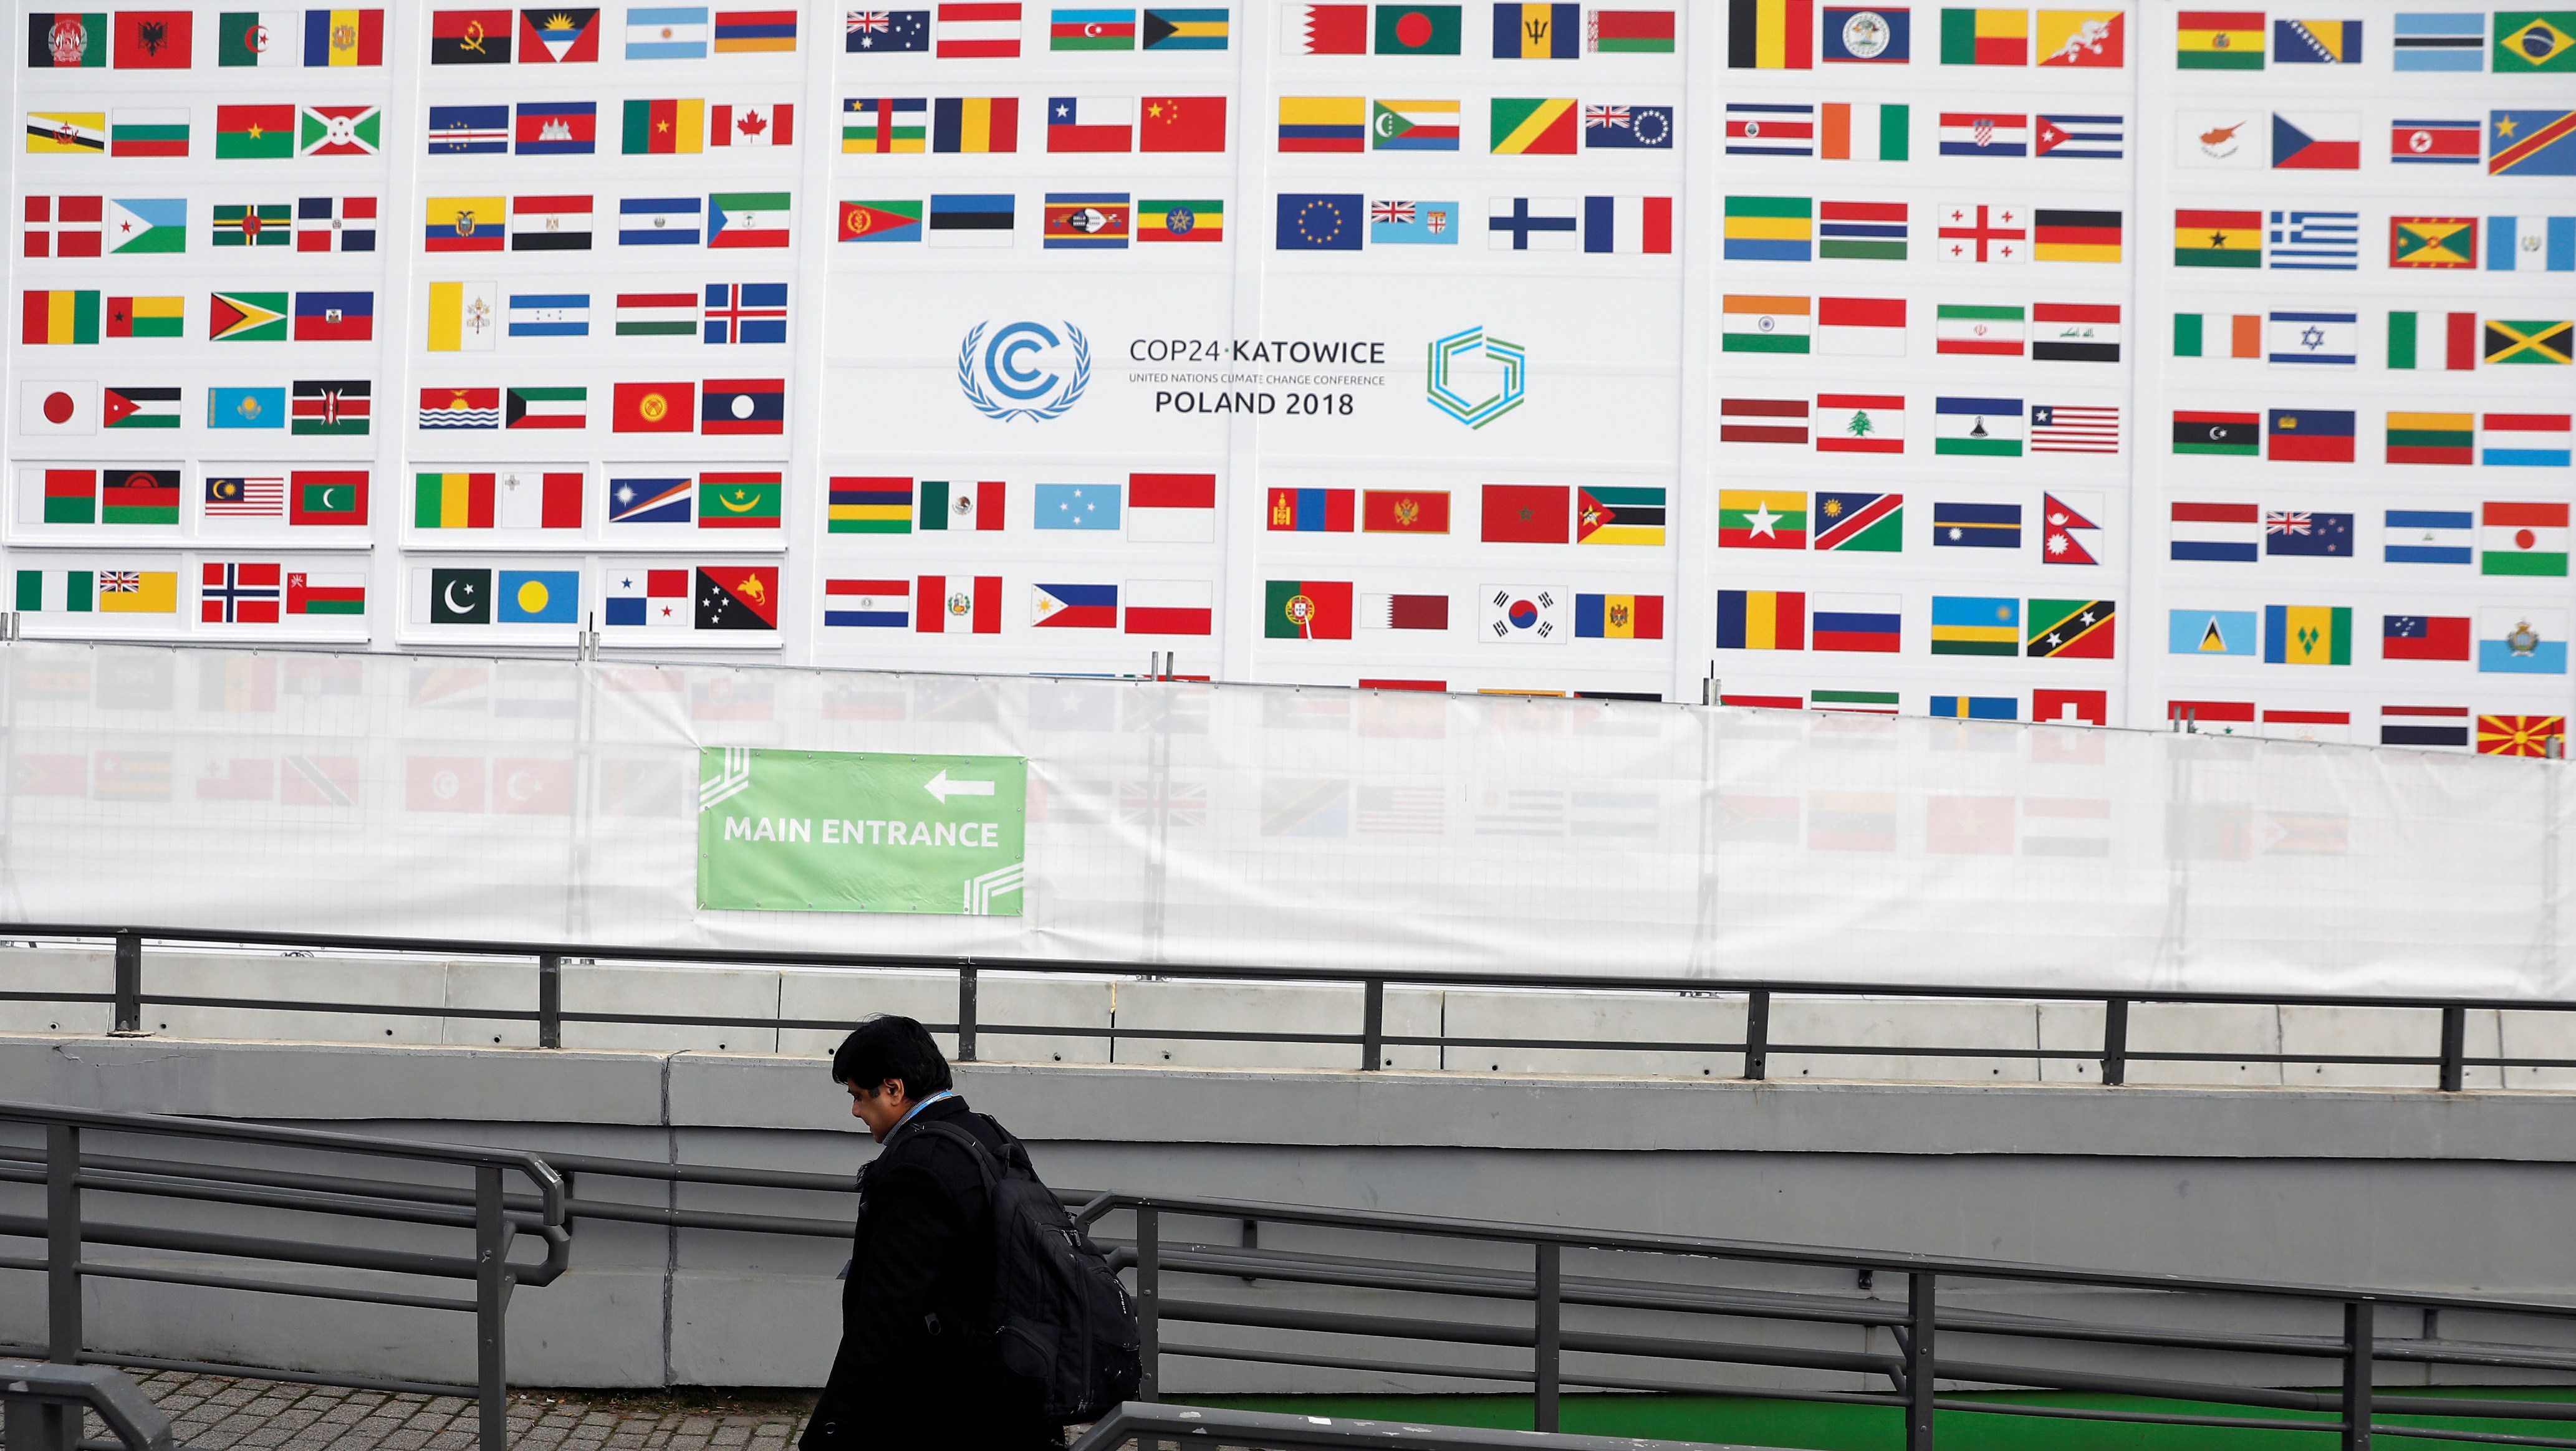 A delegate arrives for the COP24 UN Climate Change Conference 2018 in Katowice, Poland December 2, 2018. REUTERS/Kacper Pempel